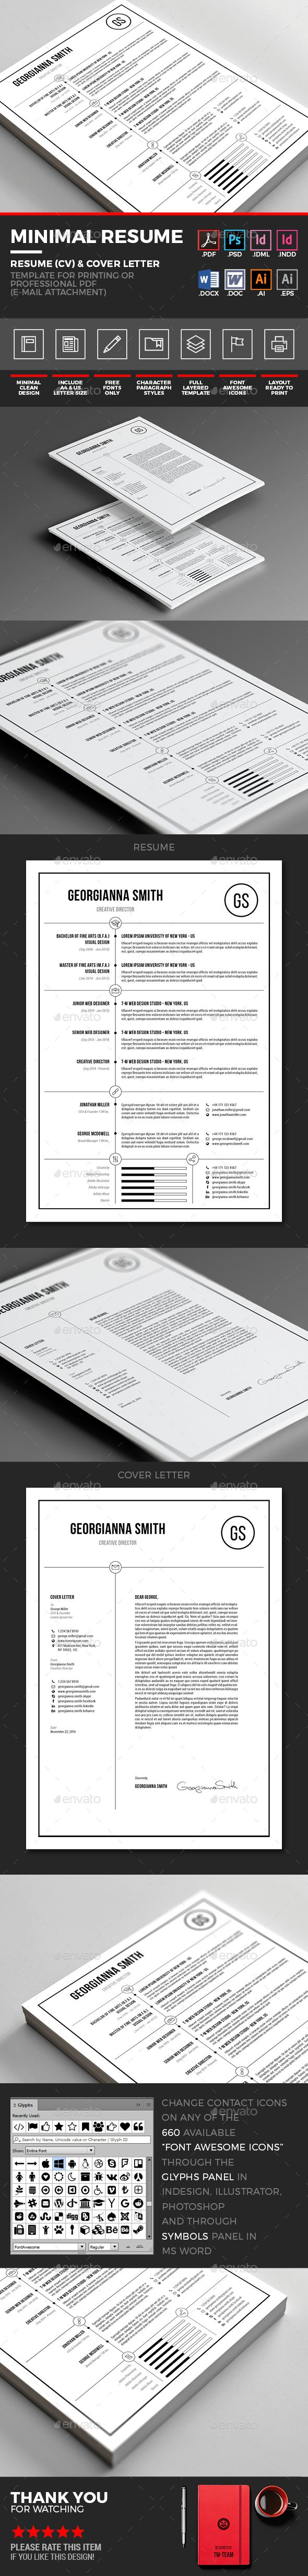 """Minimal Resume - Simple And Clean Resume (Ð¡v) Template By Y-N Minimal  Resume(Cv) €"""" Minimal Clean Resume(Cv) And Cover Letter Template With  Customizable"""